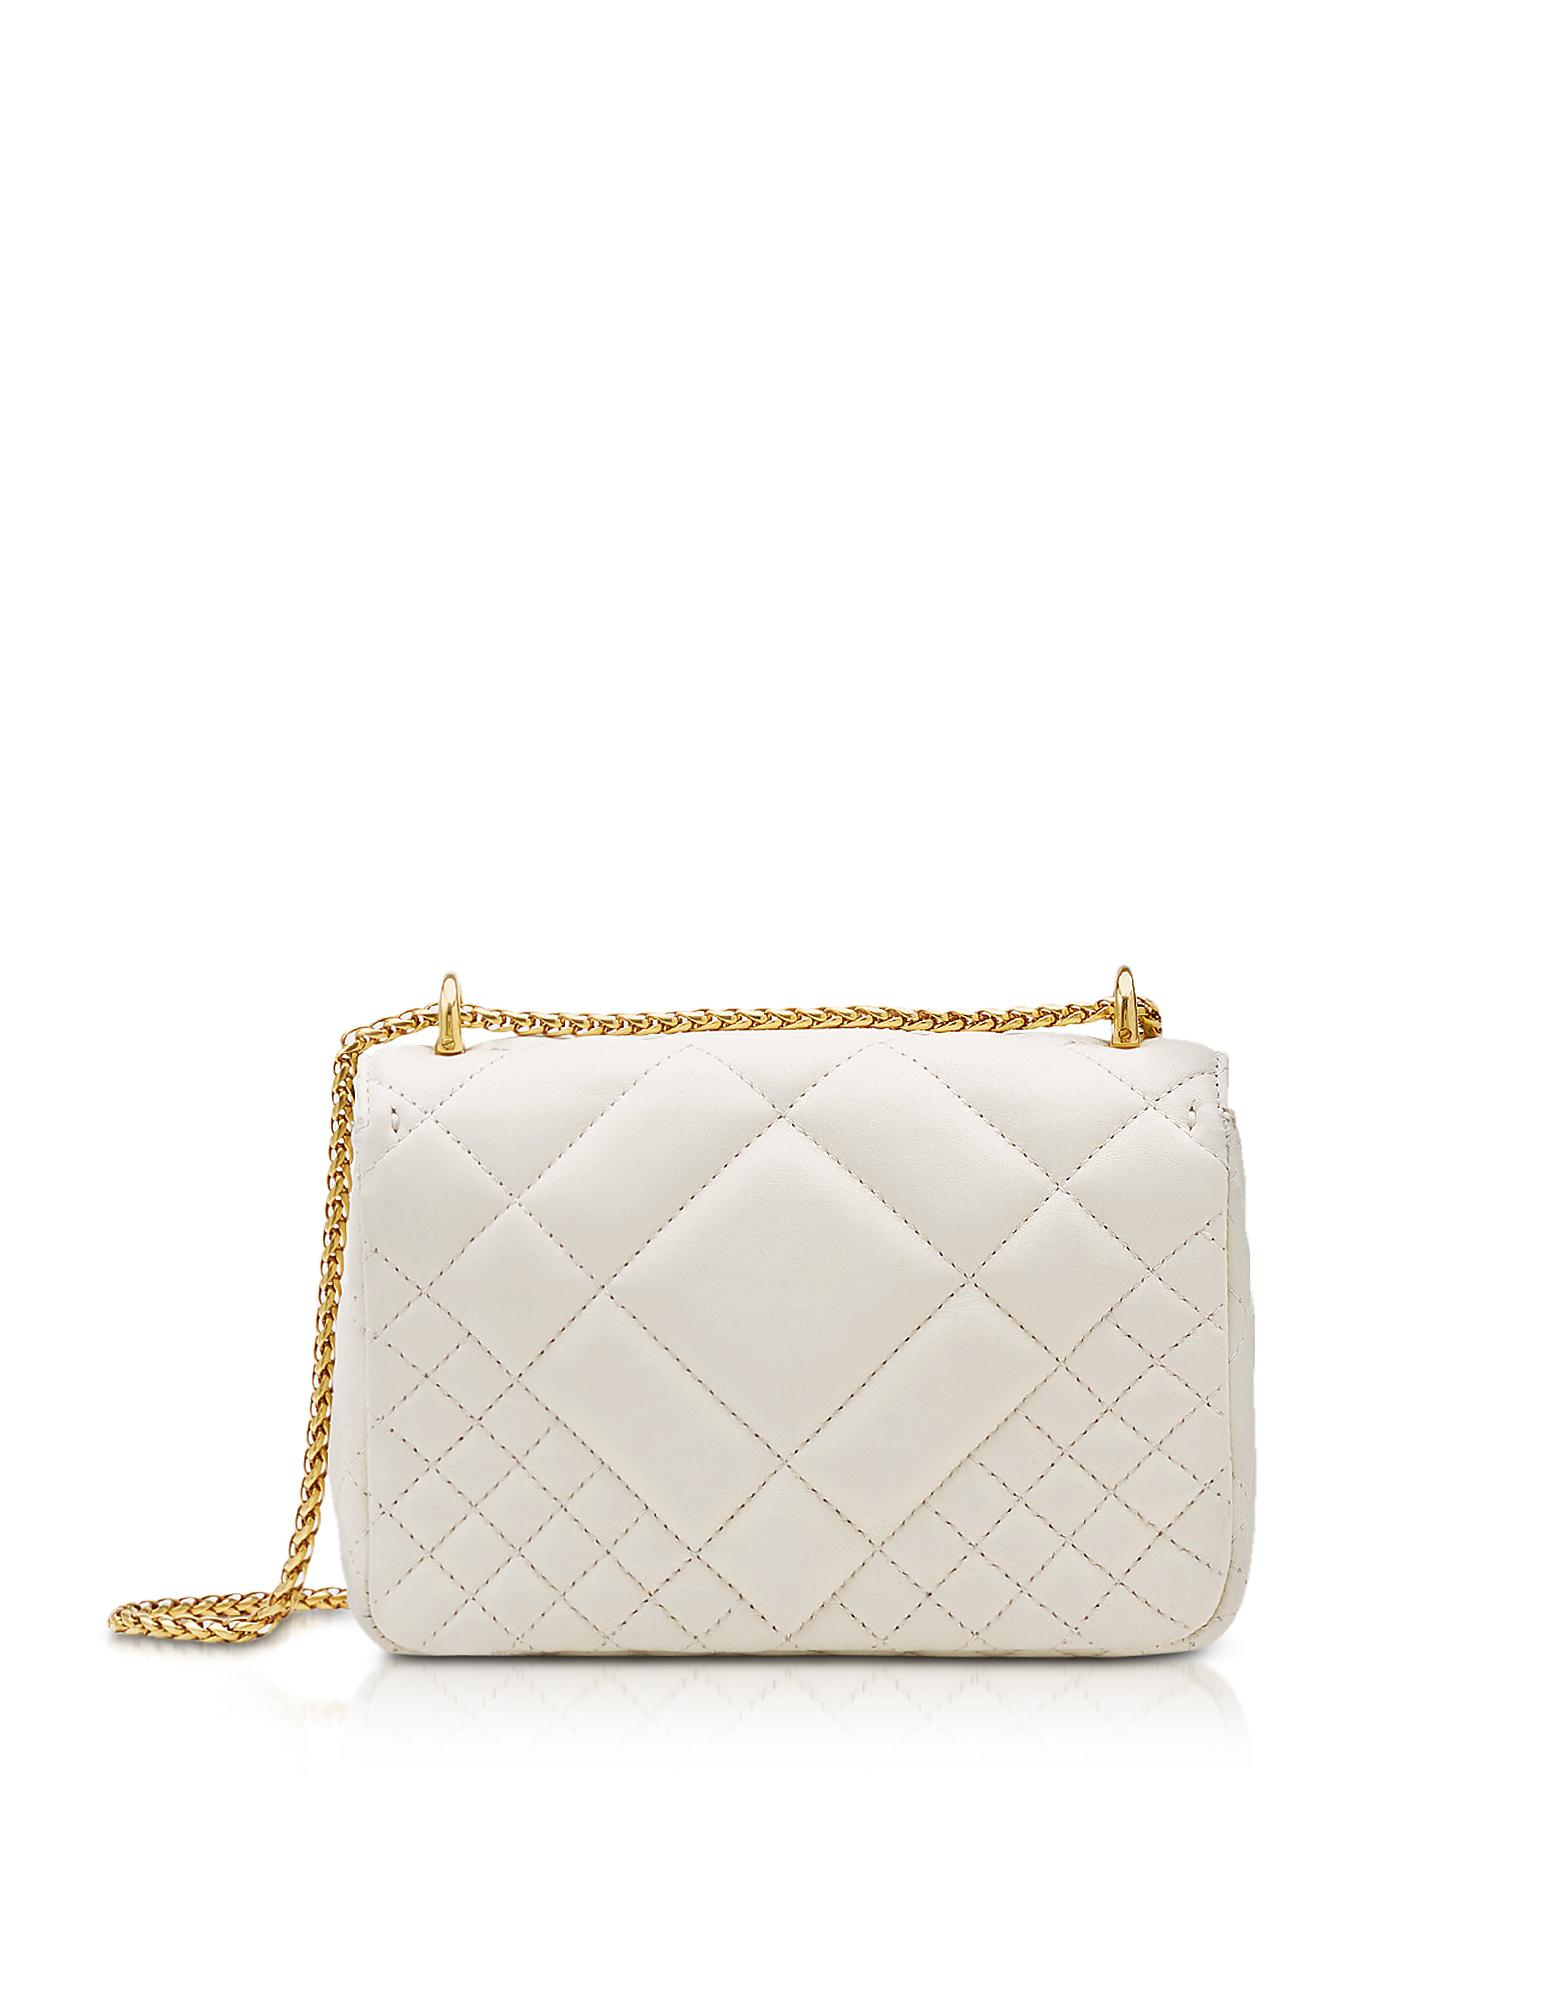 eee5d0d9a3 Versace. Women s White Small Quilted Leather Icon Small Shoulder Bag